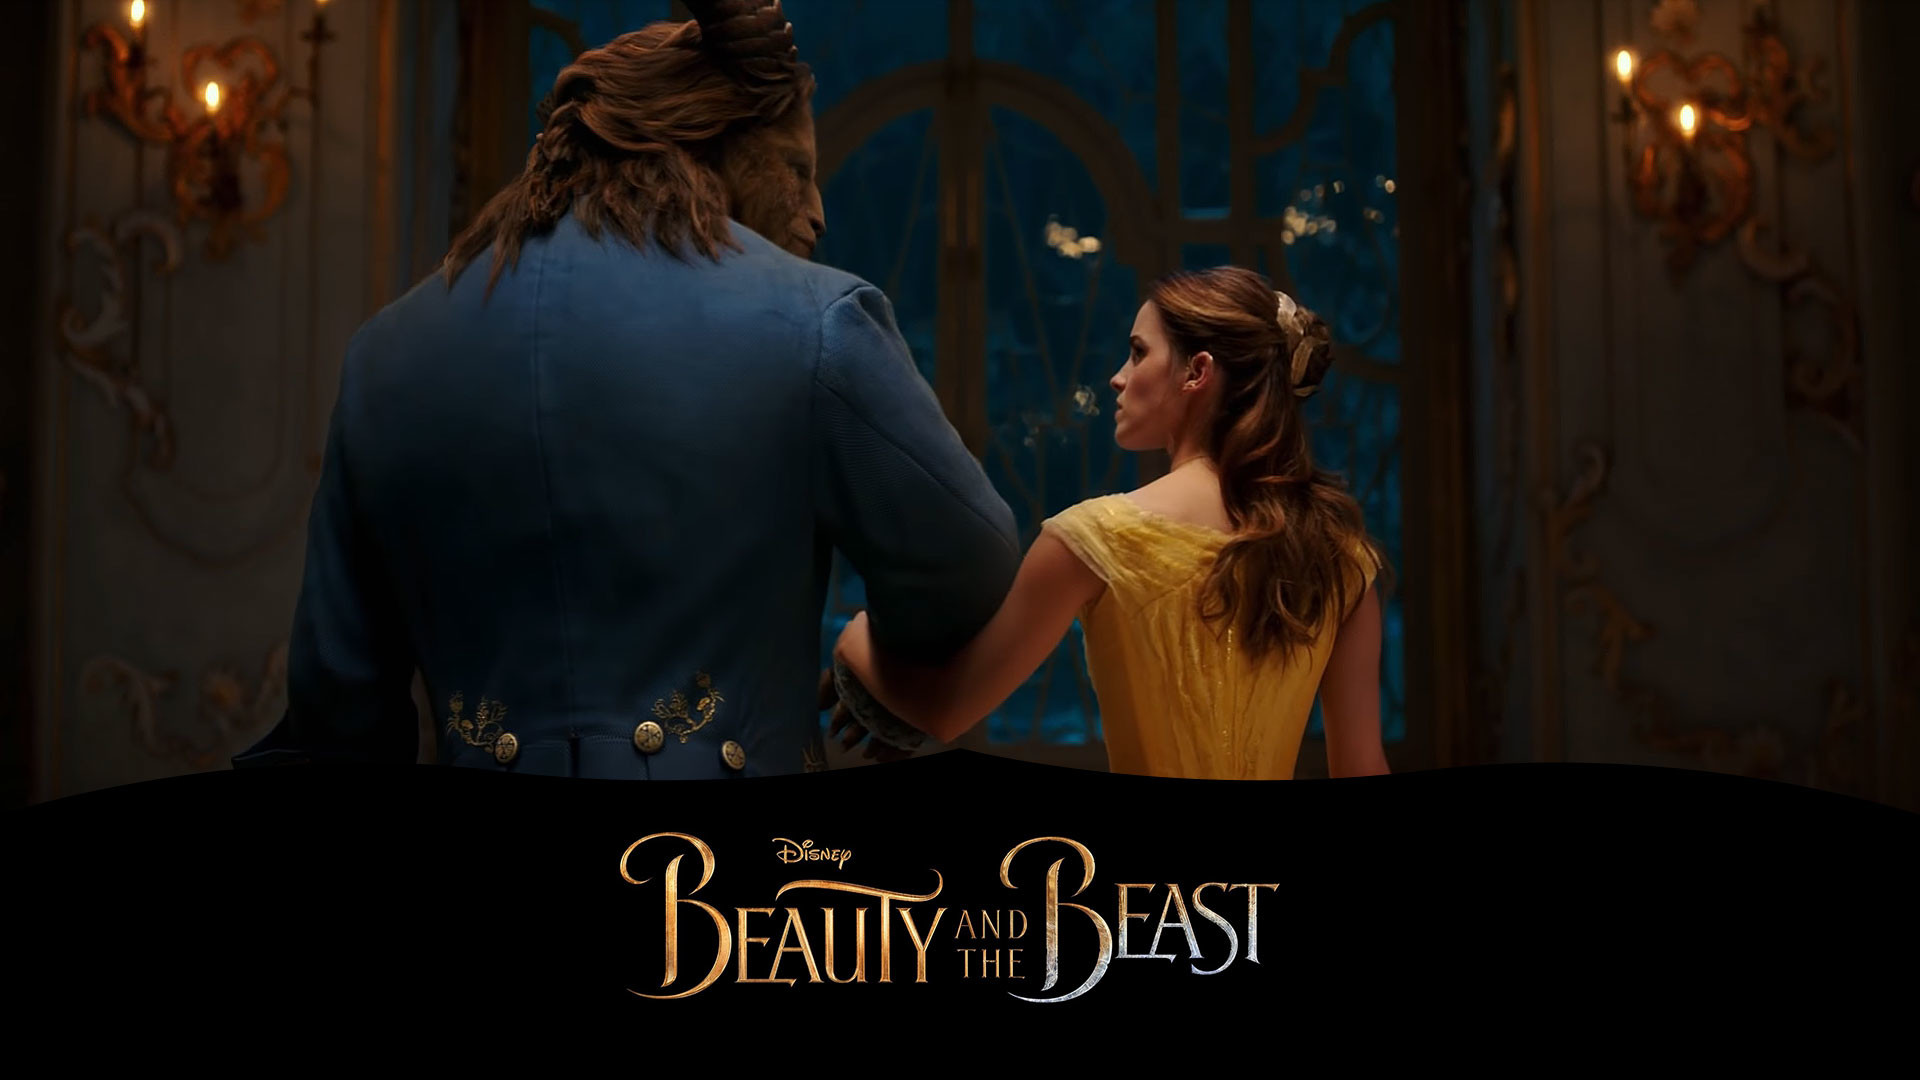 Download Beauty And Beast: Beauty And The Beast Wallpaper (79+ Images